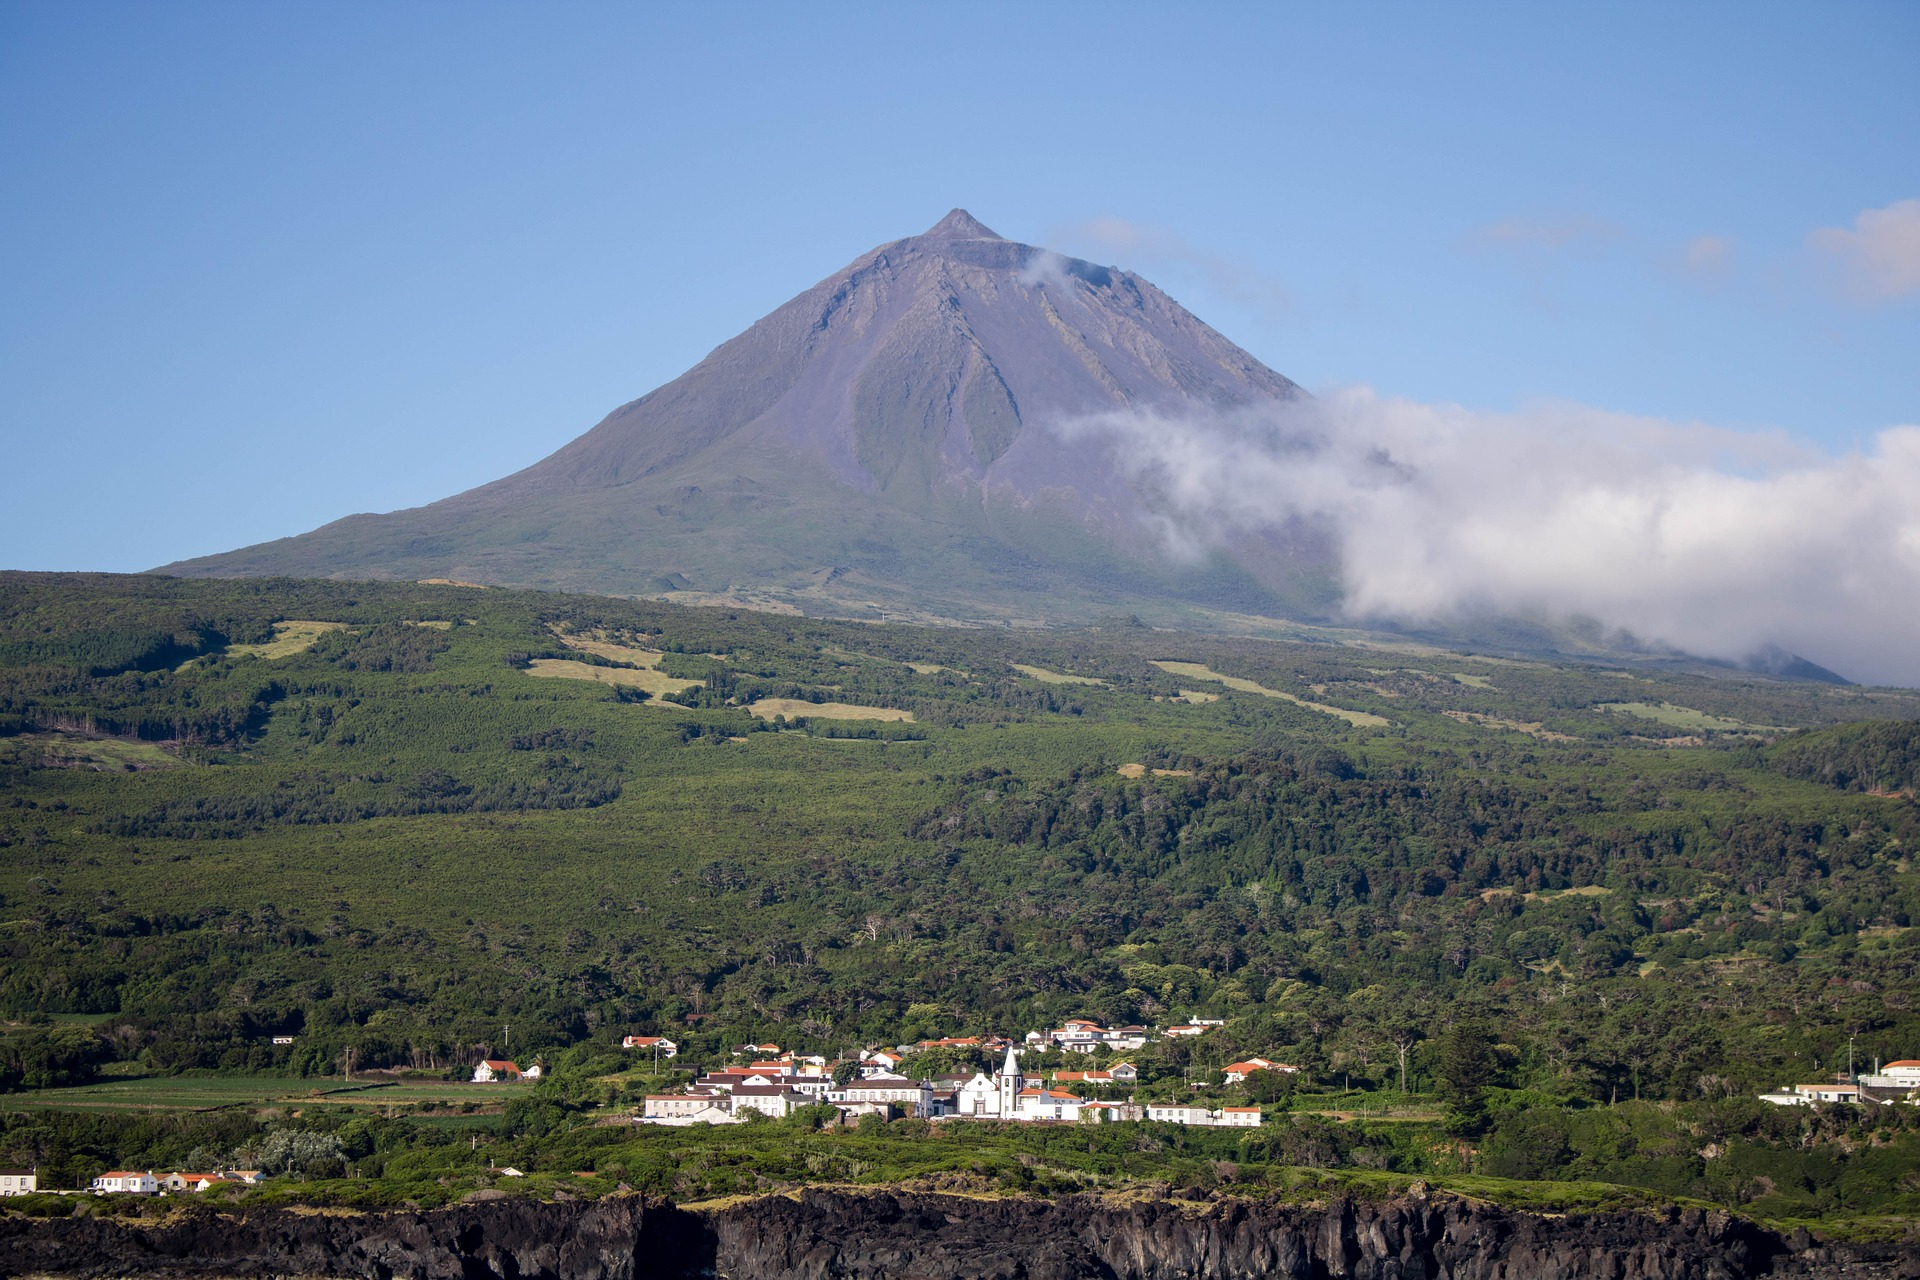 Volcano dominates the skyline on this island in the Azores